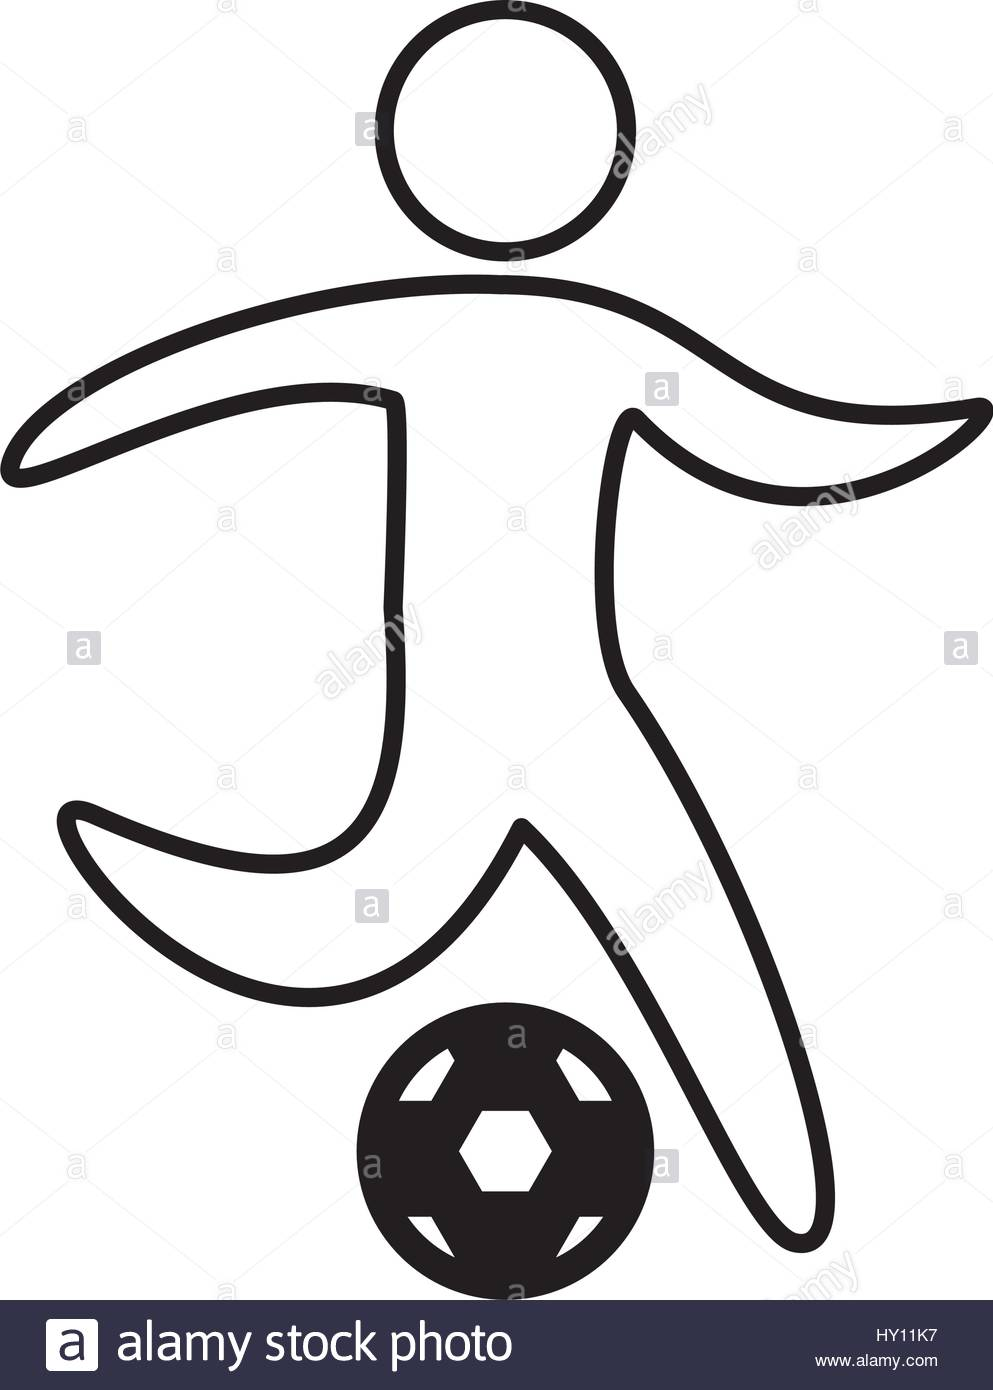 993x1390 soccer player silhouette icon Stock Vector Art amp Illustration